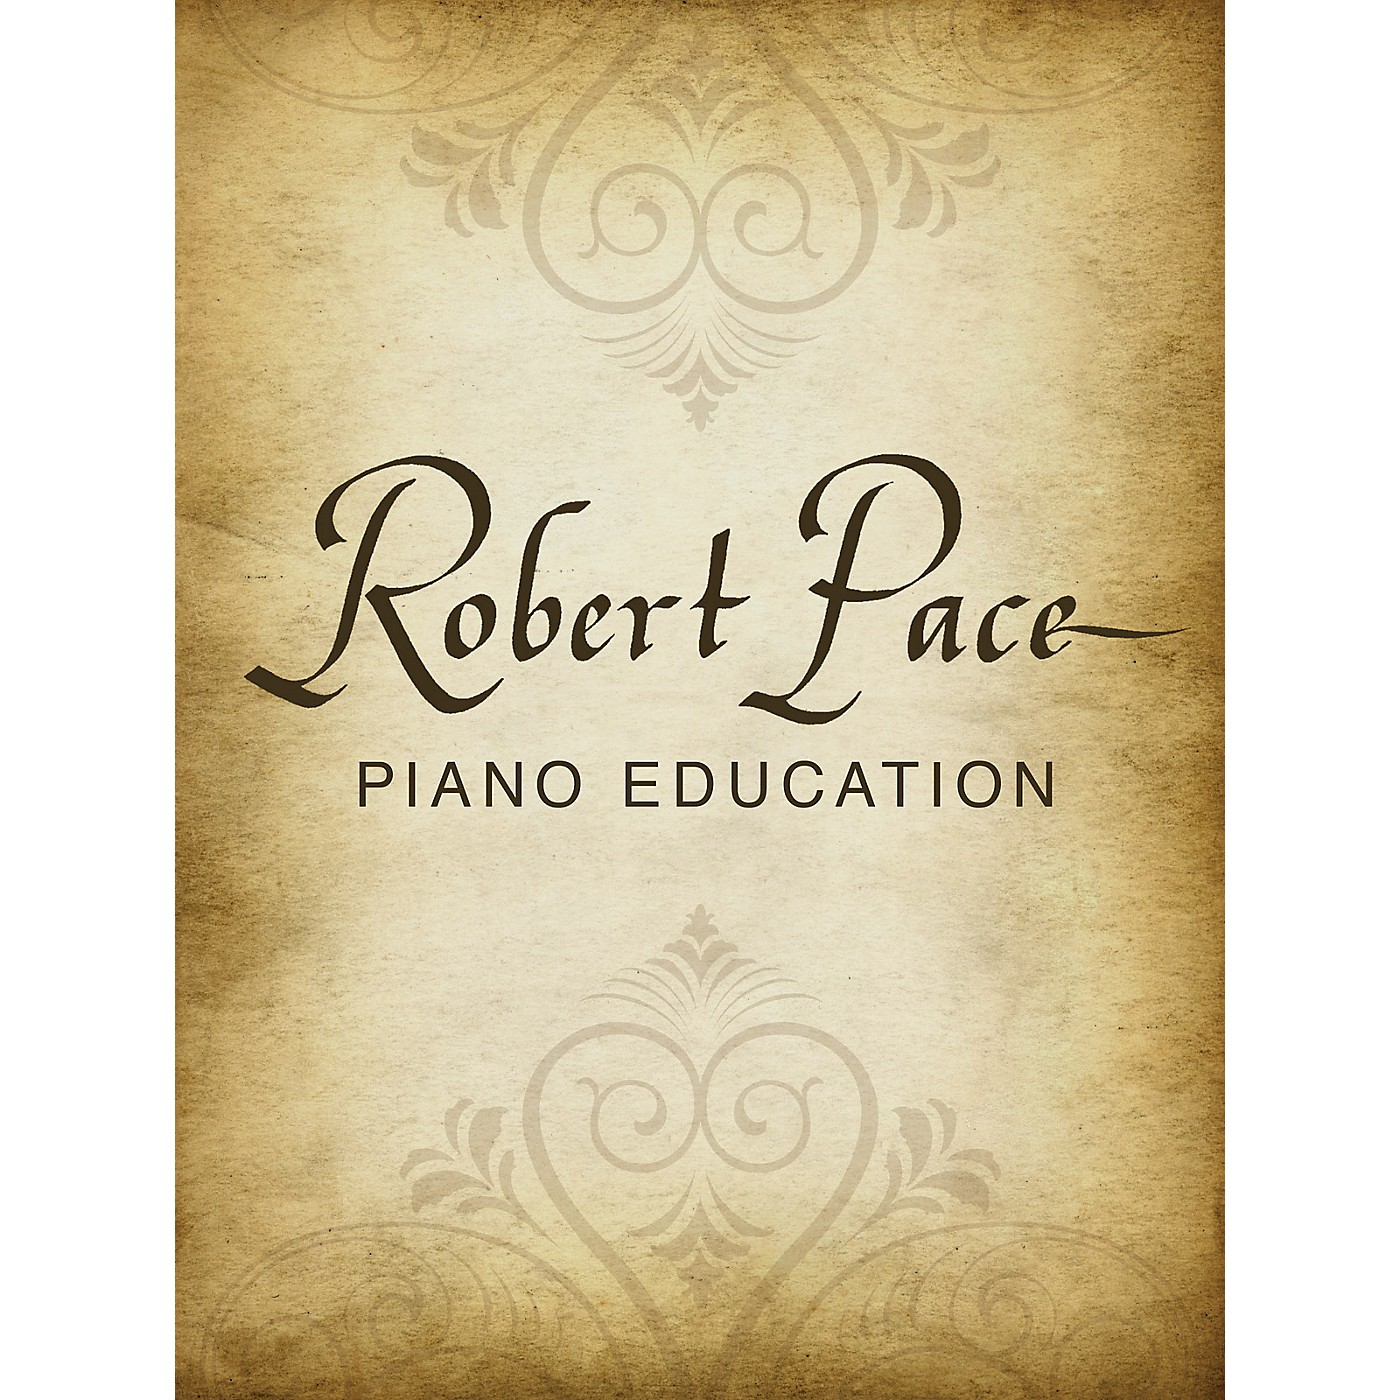 Lee Roberts Recital Series For Piano, Green (Book IV) Passepied Pace Piano Education Series thumbnail